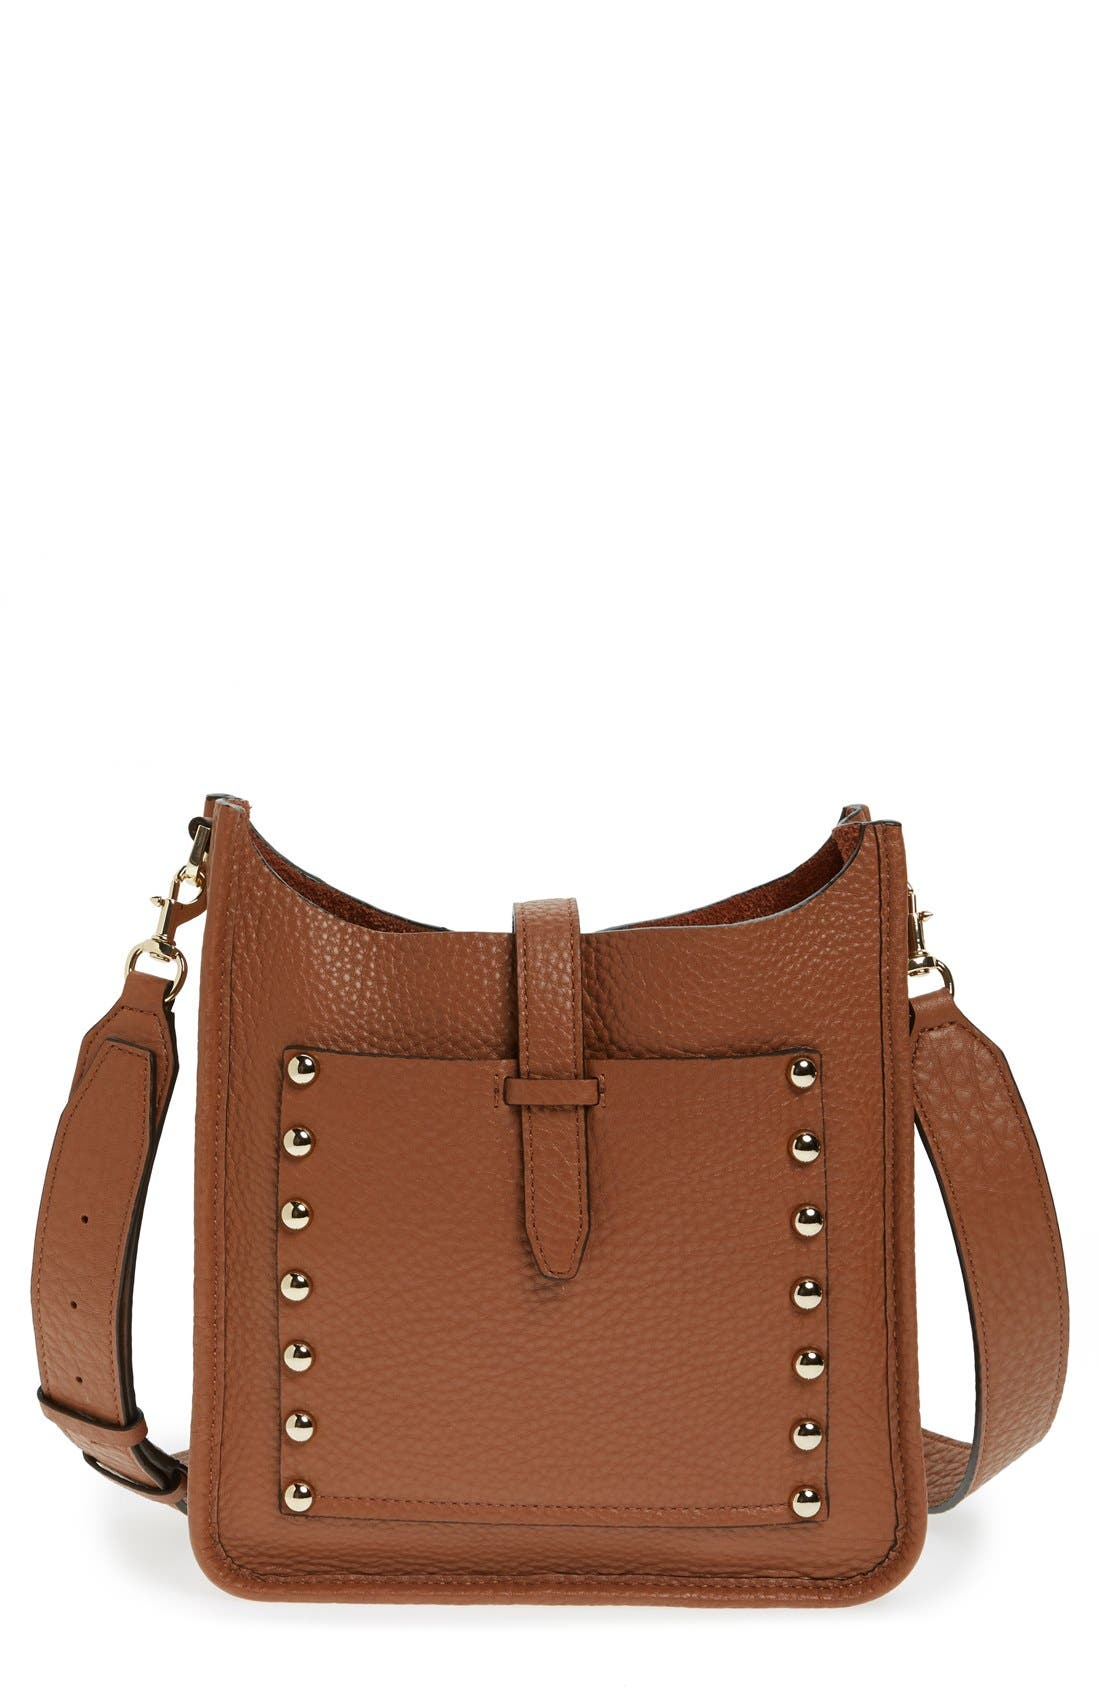 Alternate Image 1 Selected - Rebecca Minkoff Small 'Feed' Bag